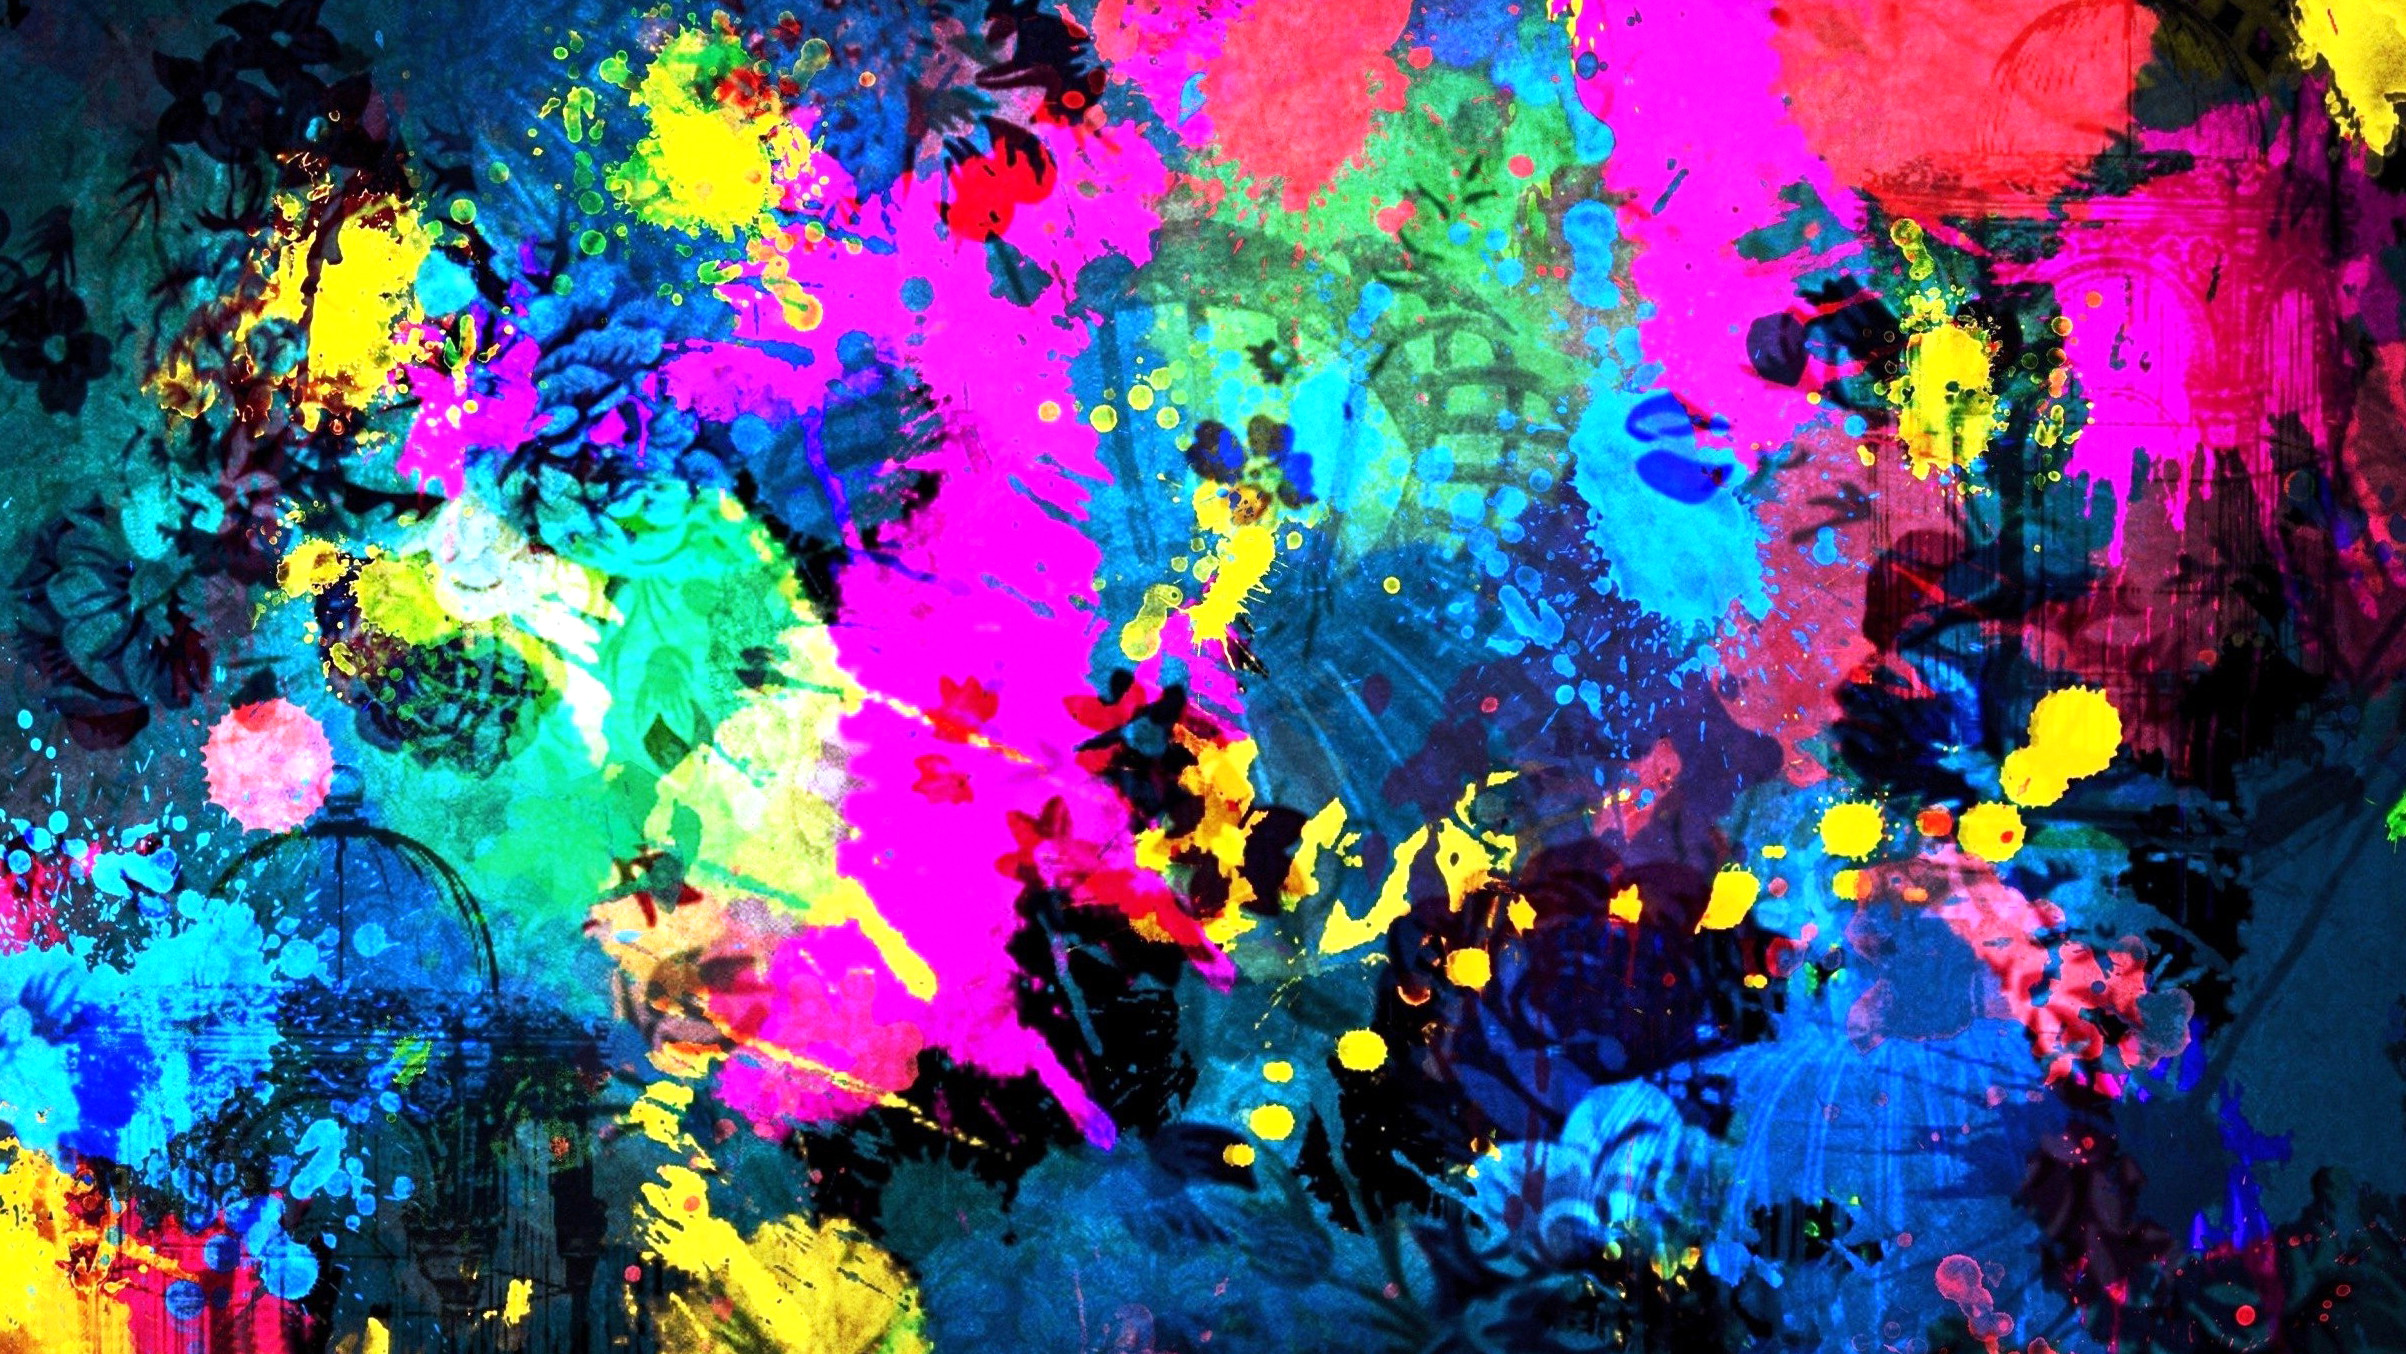 High definition abstract wallpapers 58 images 1920x1080 abstract wallpaper desktop pc background photos high resolution cool 19201080 wallpaper hd voltagebd Image collections